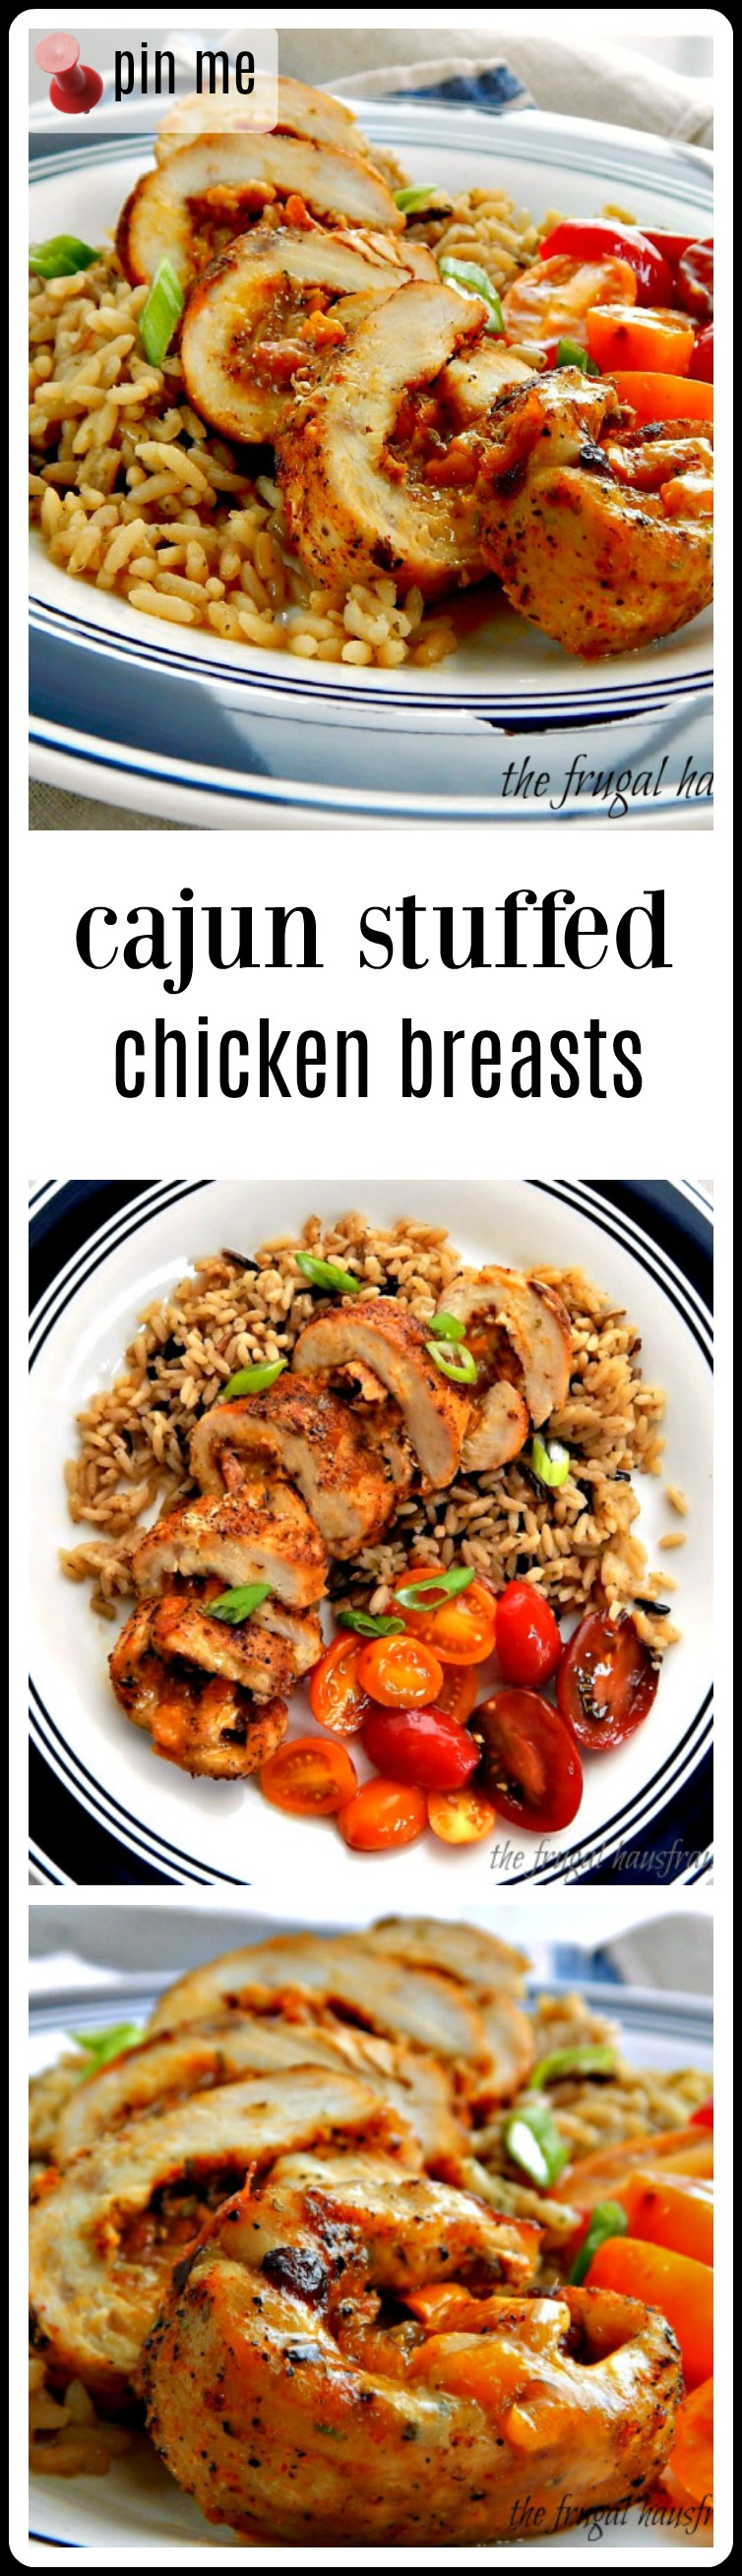 Cajun Stuffed Chicken Breast - stuffed with the classic New Orleans Trinity and Cheese! Ya gotta have cheese!! Very do-able and surprisingly quick. If your family is like mine, they're going to go nuts over Cajun Stuffed Chicken Breasts! #CajunStuffedChickenBreasts #CajunChicken #CajunChickenBreast #StuffedChickenBreast